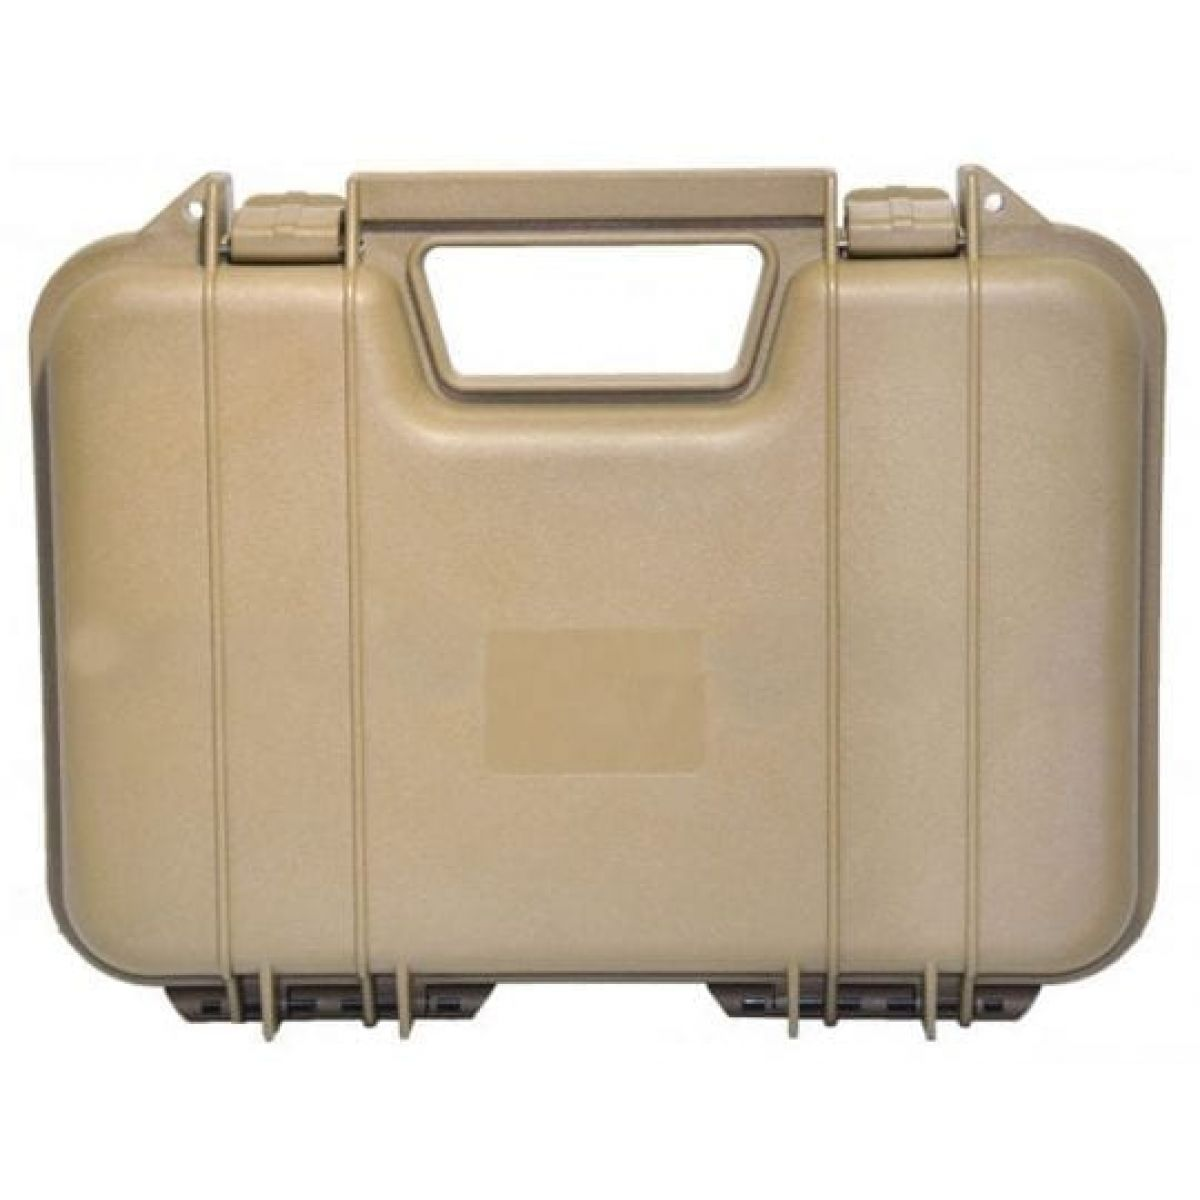 Single Pistol Case Secure Premium Hard Plastic Gun Case tan